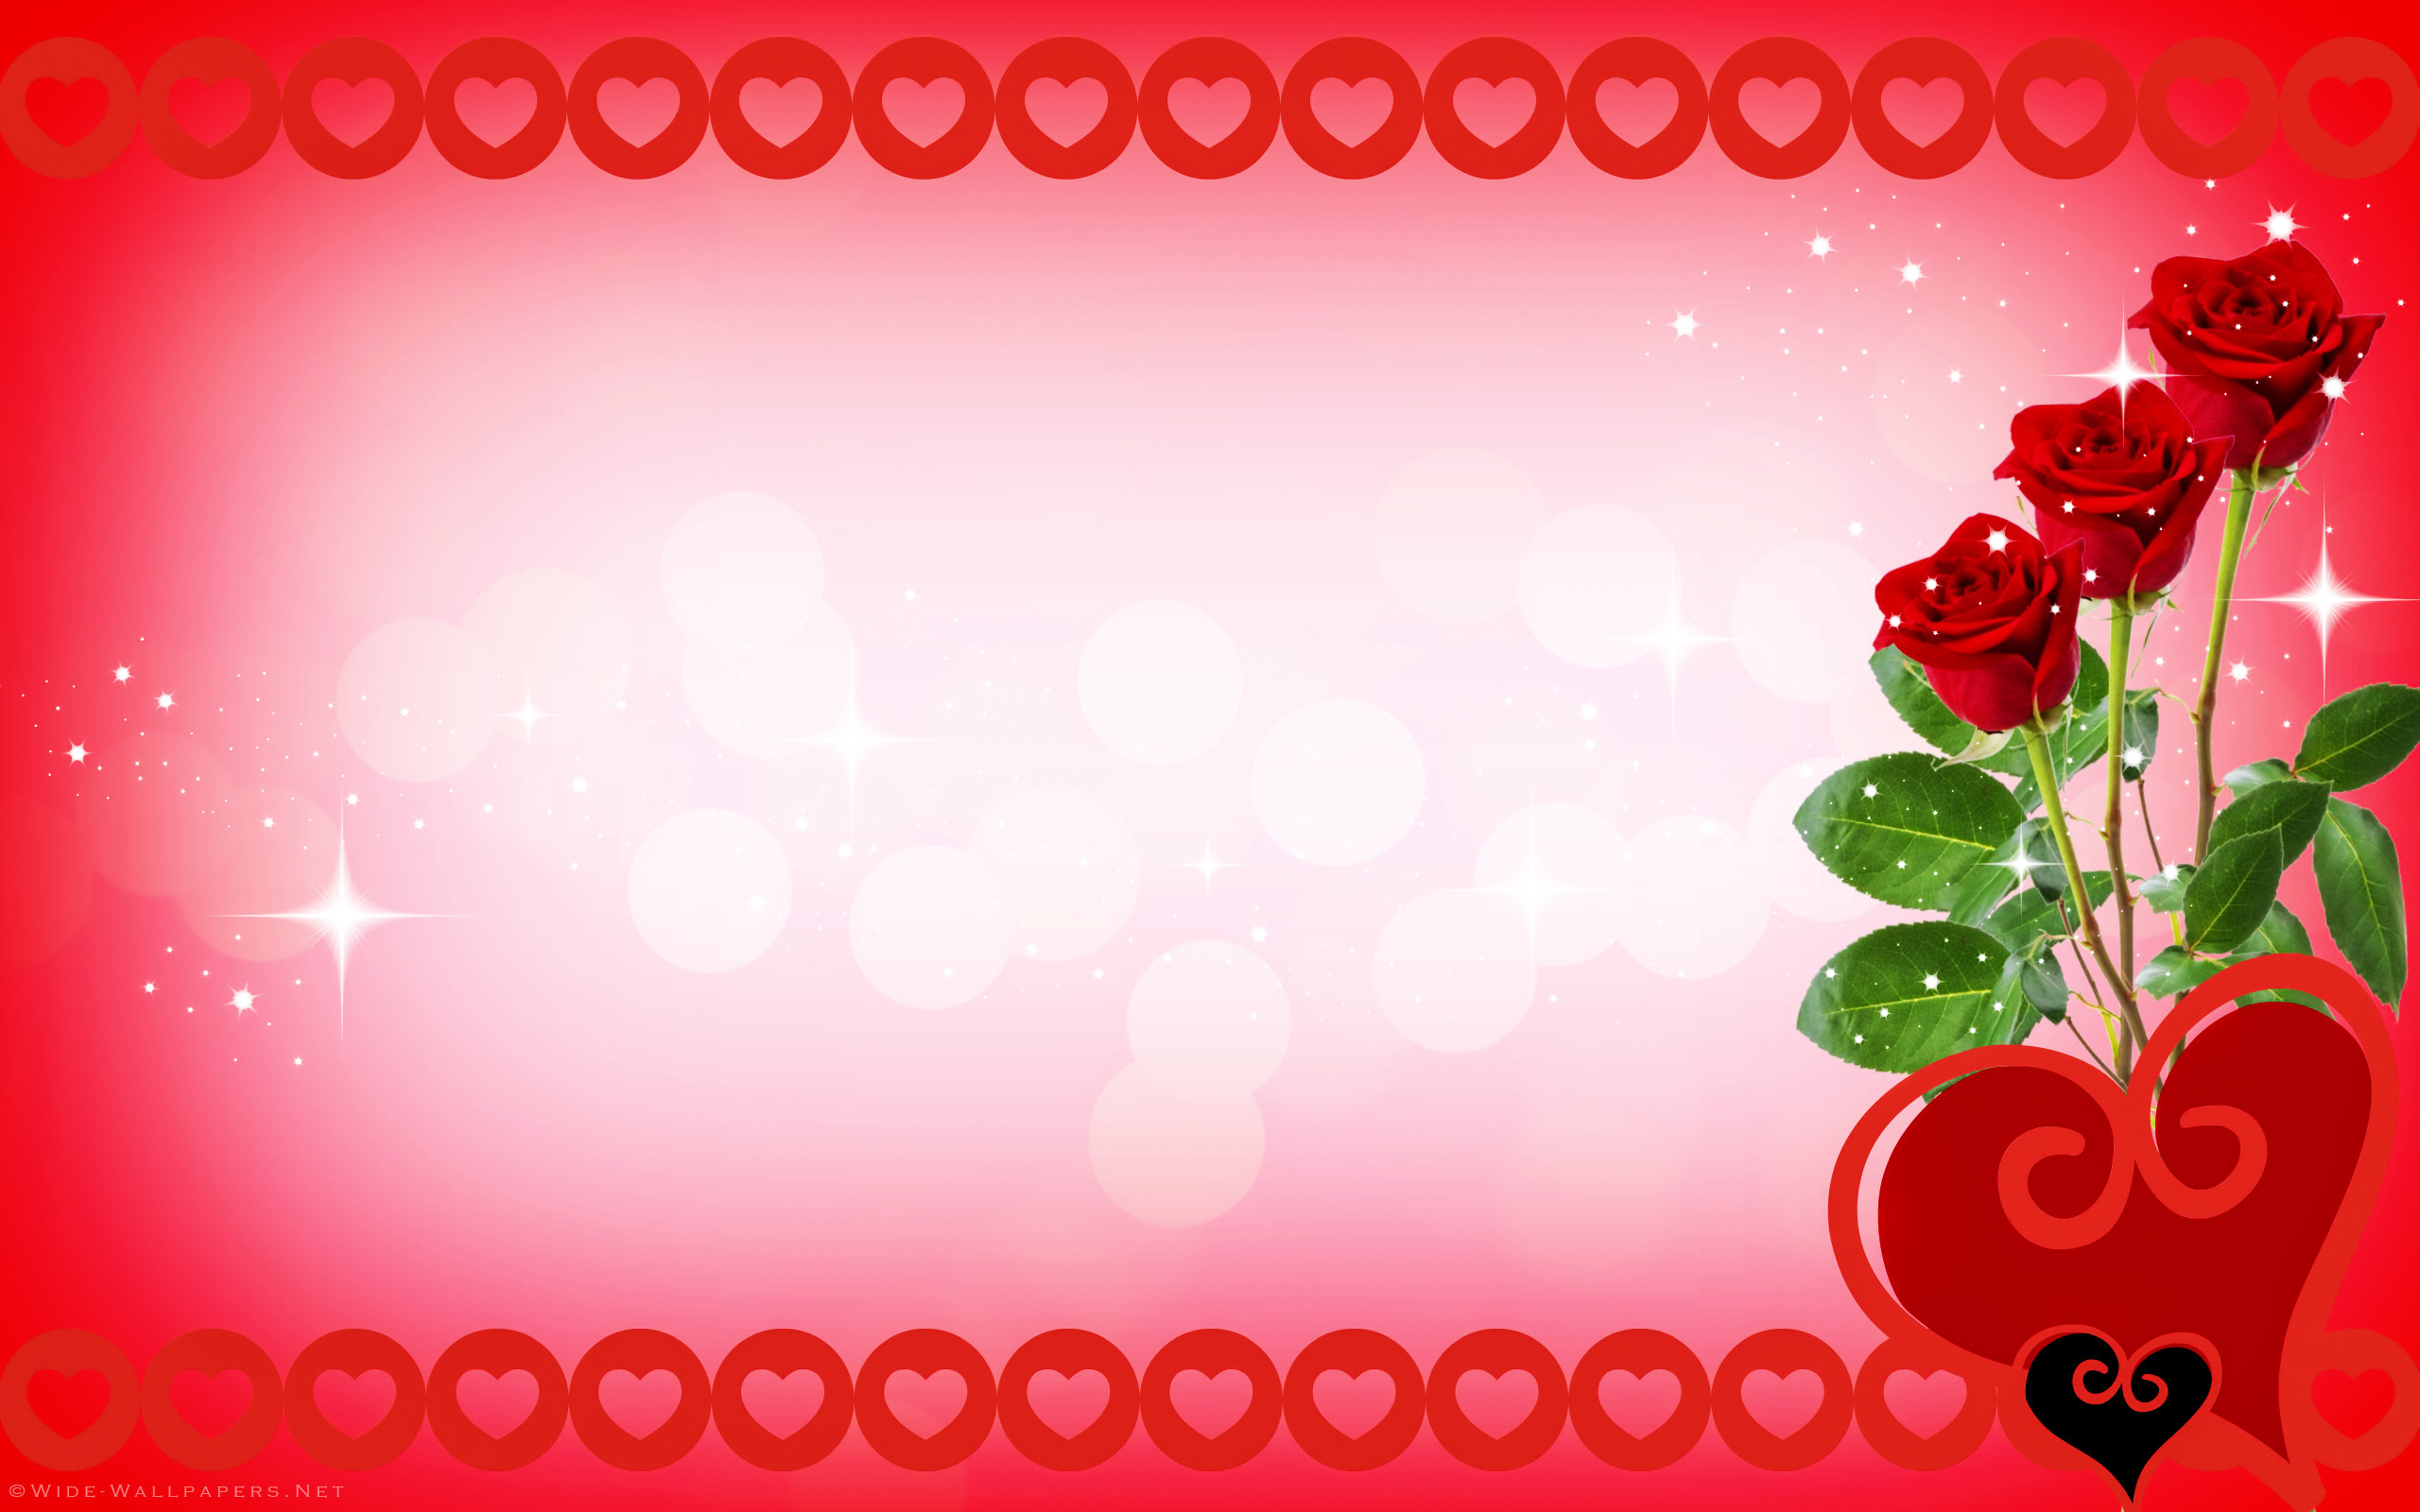 Valentine's Day Card Red Roses and Hearts wallpaper